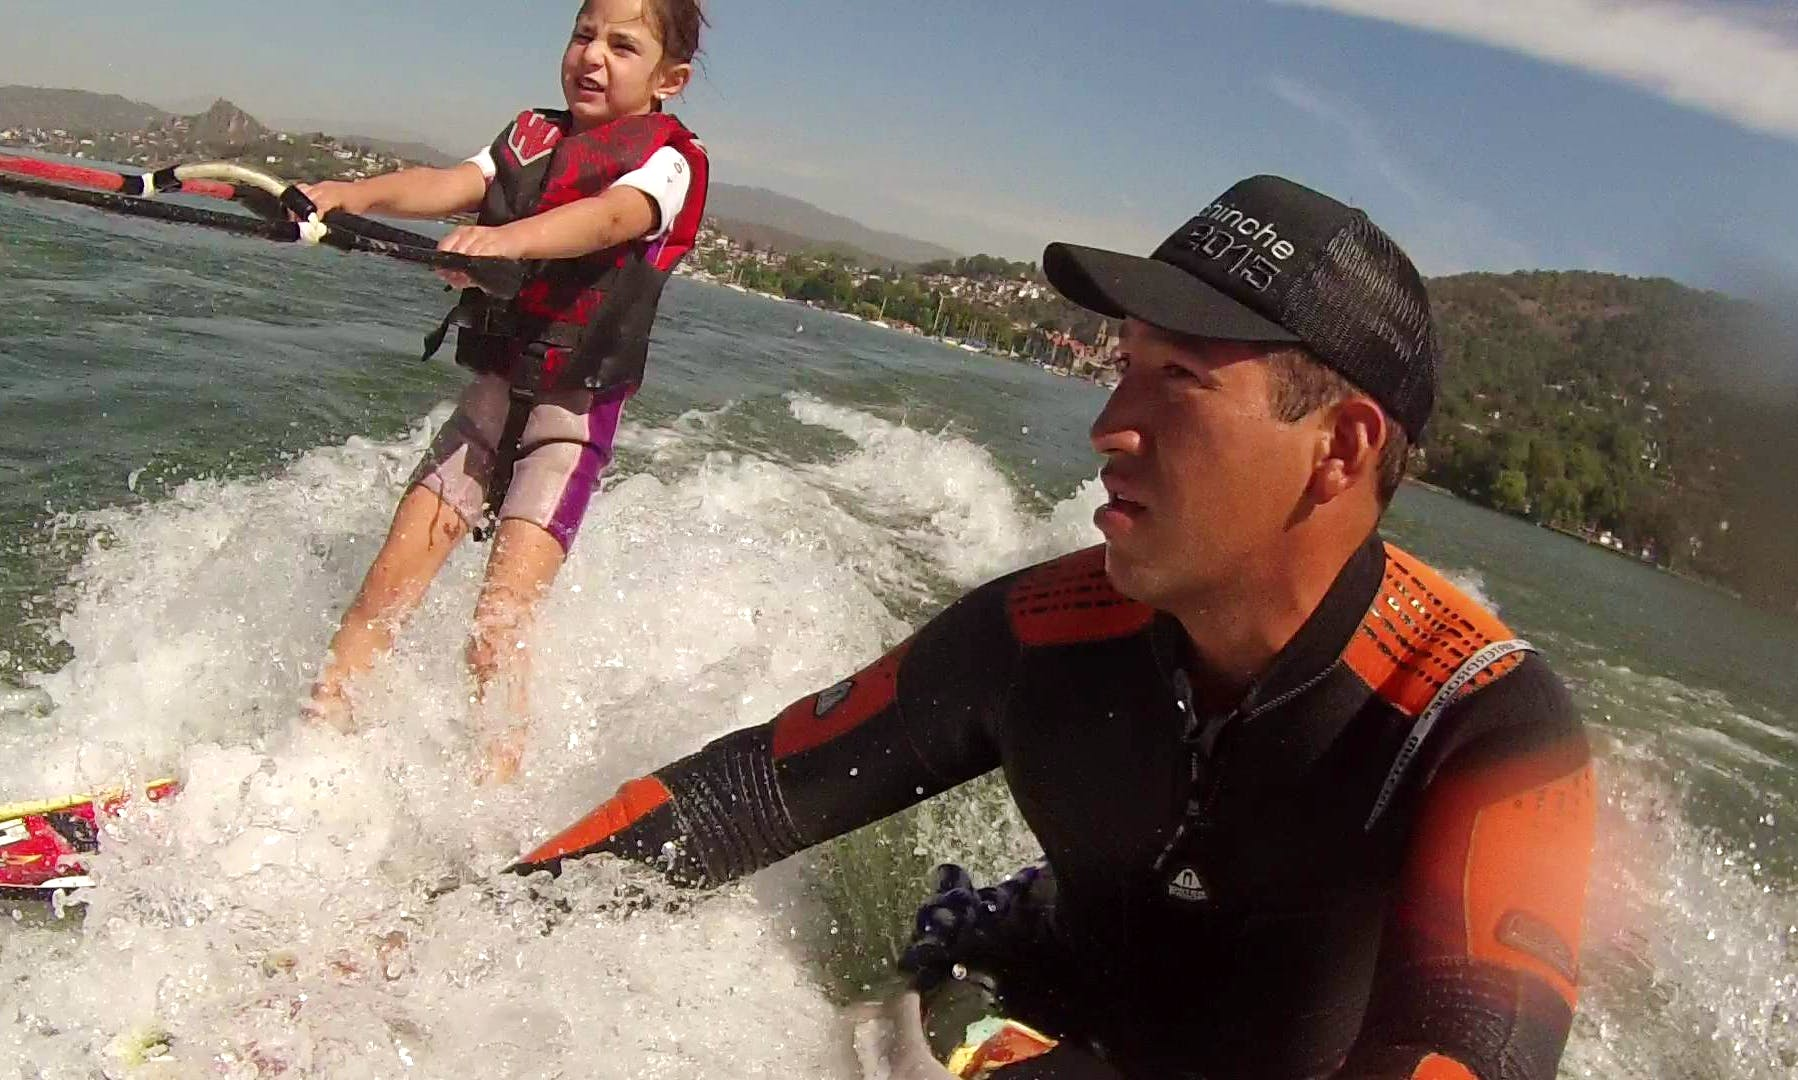 Wakeboarding Lessons in Valle de Bravo